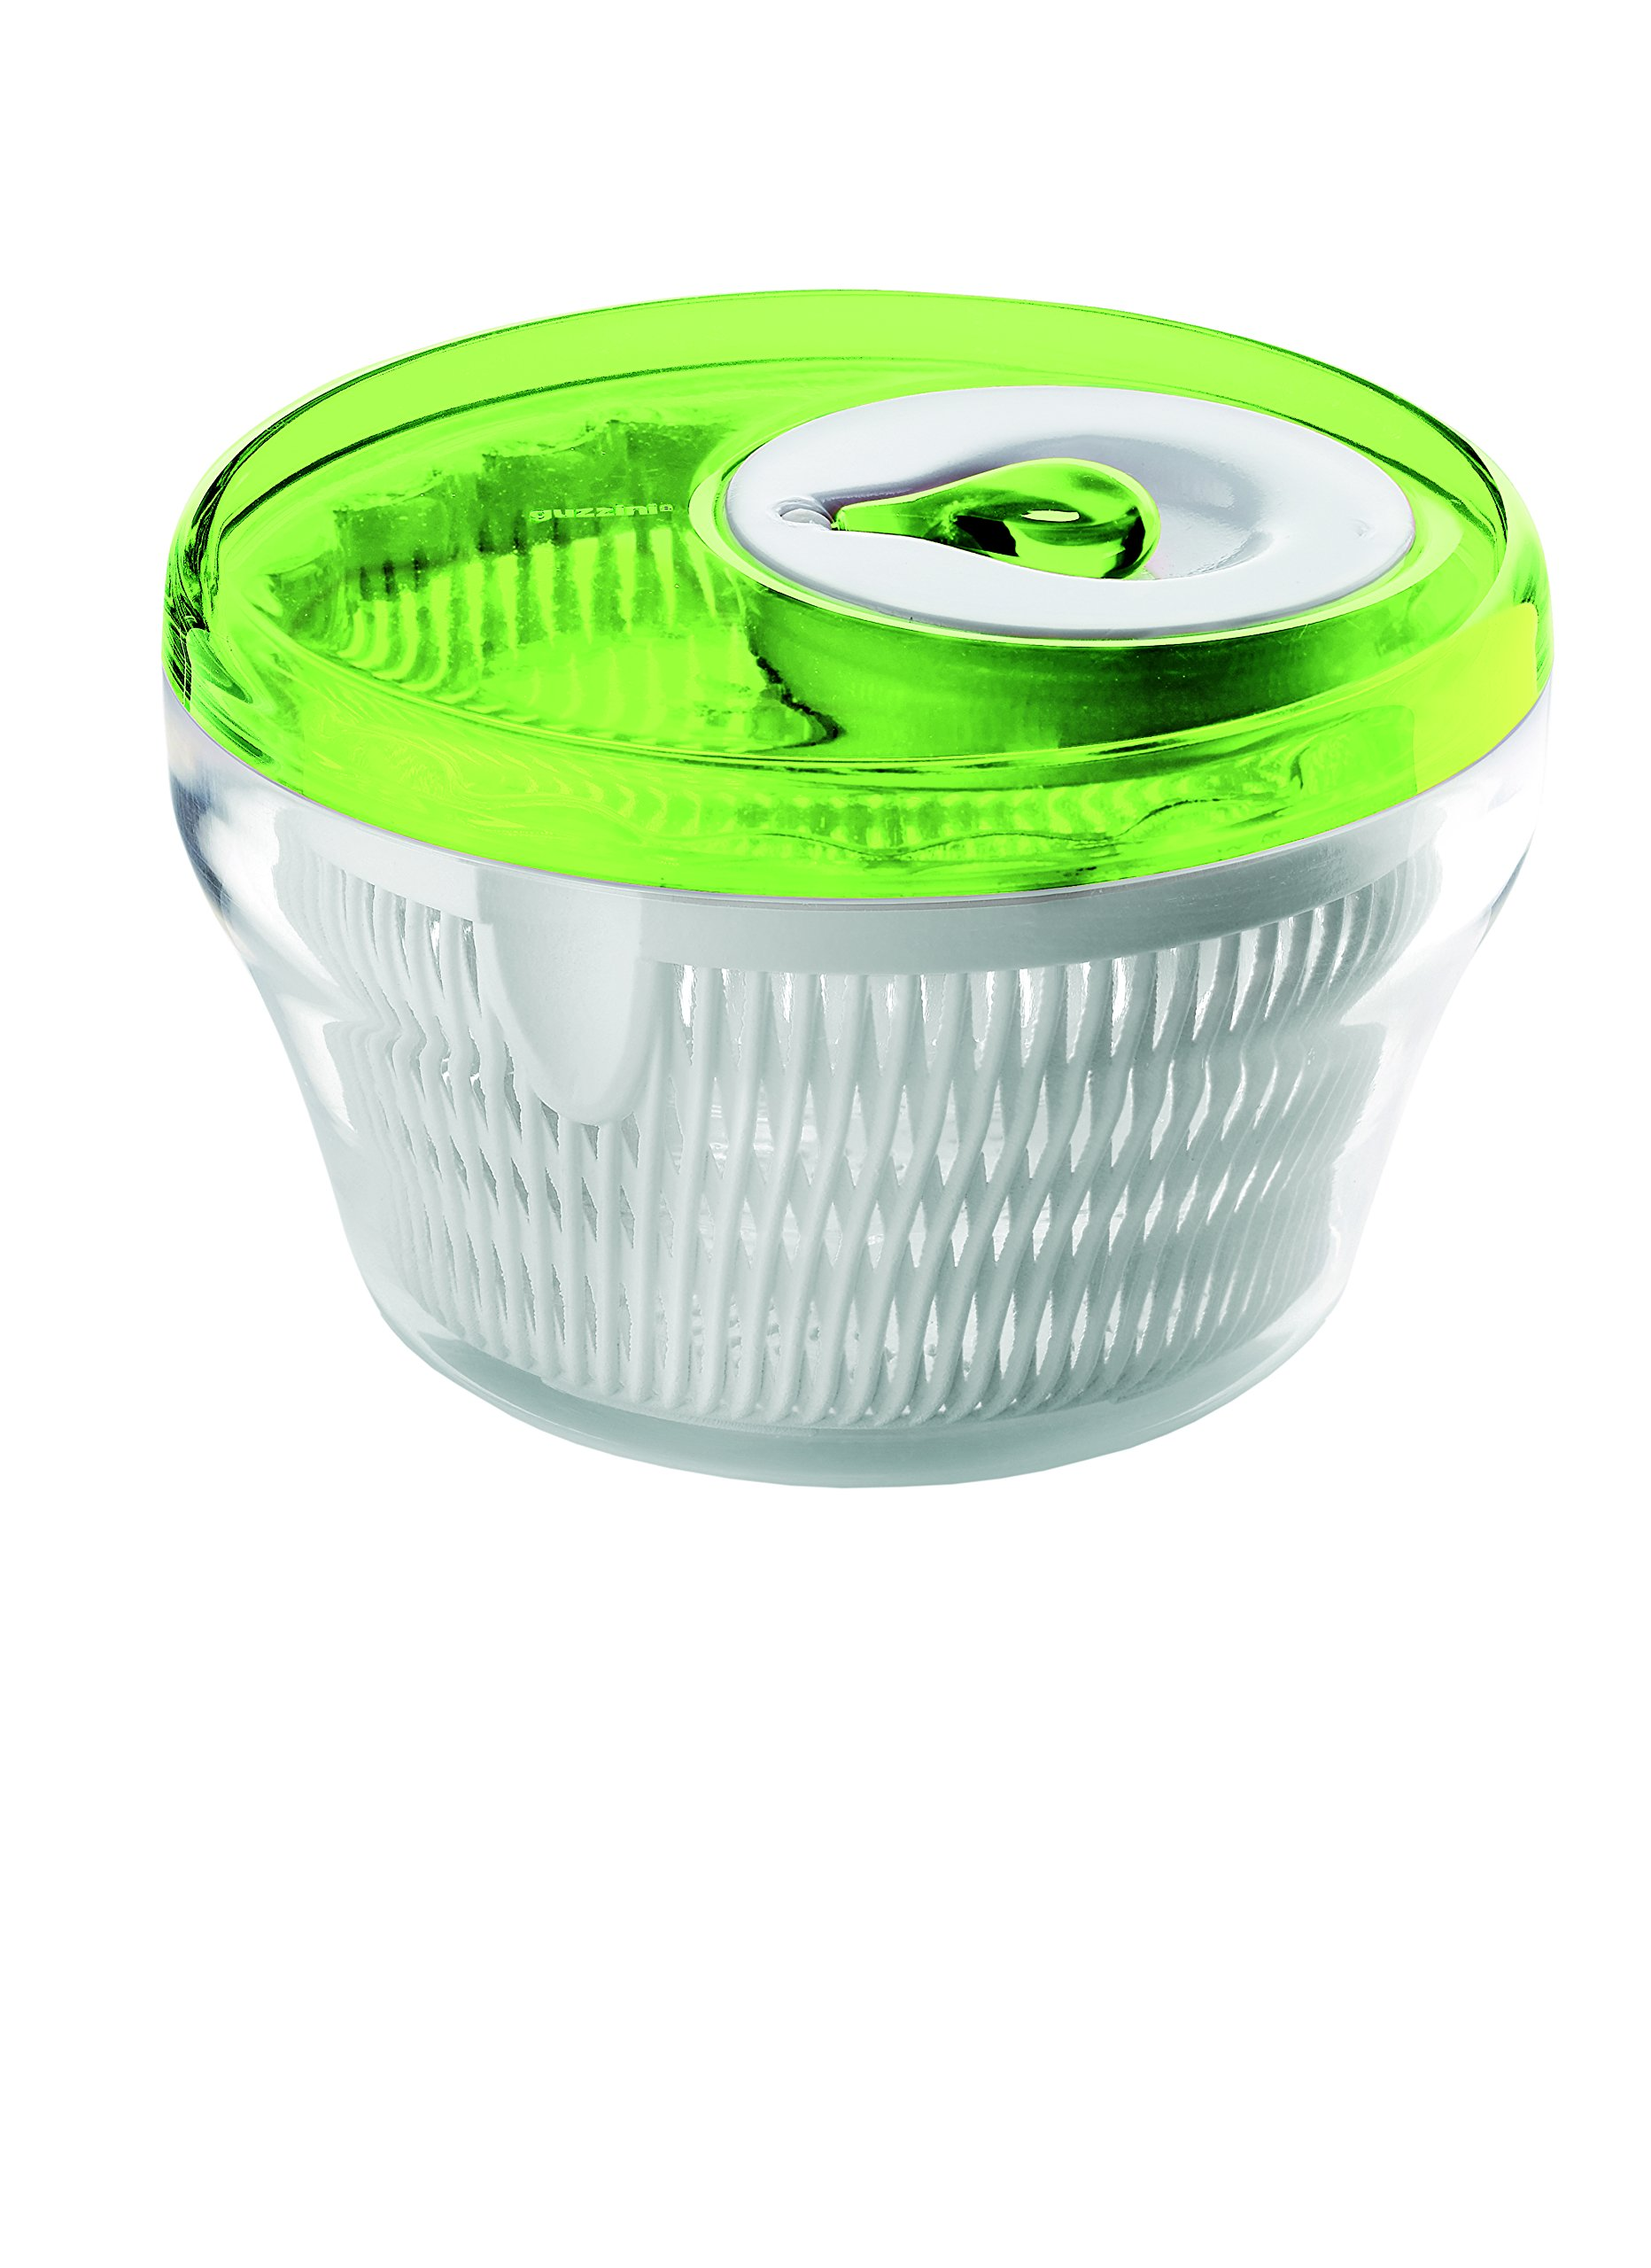 Guzzini Salad Spinner, 11-Inches, Transparent Green by Guzzini